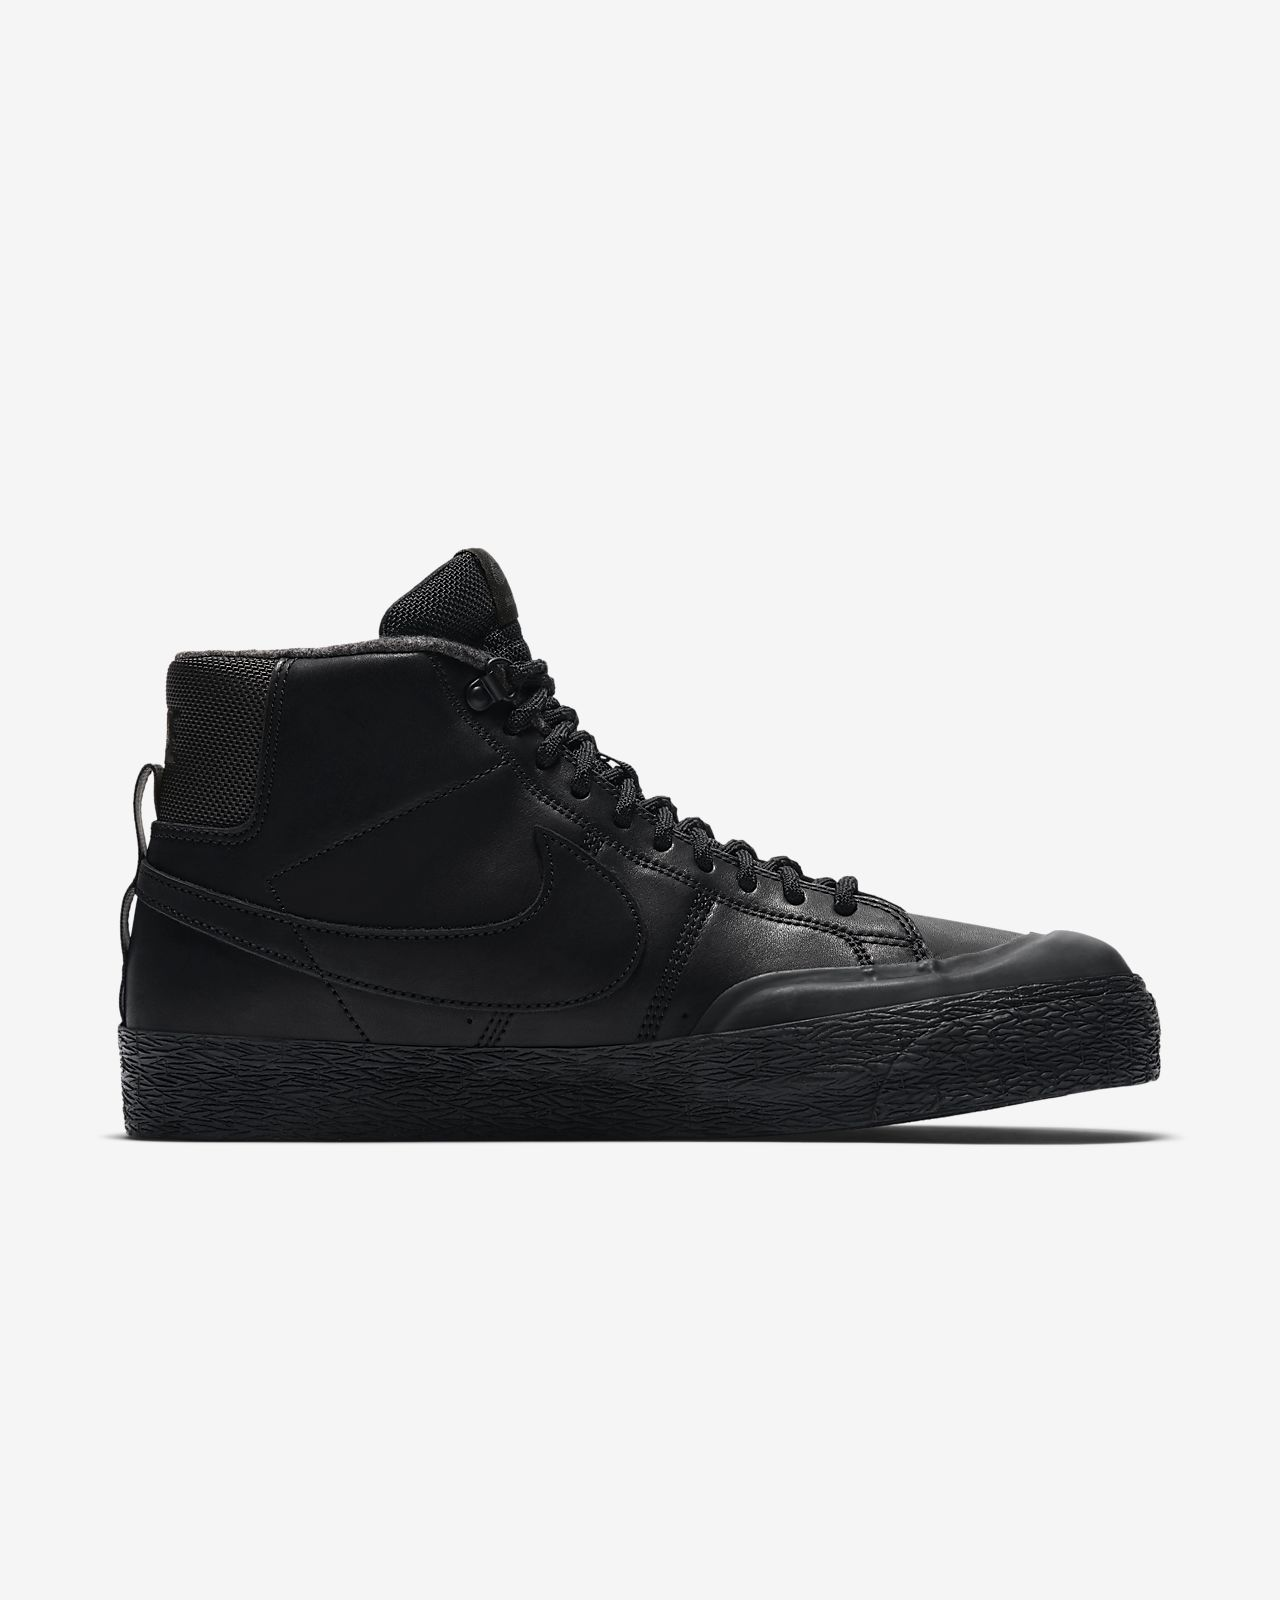 Nike SB Zoom Blazer Mid XT Bota Men's Skateboarding Shoes Black eD8506S